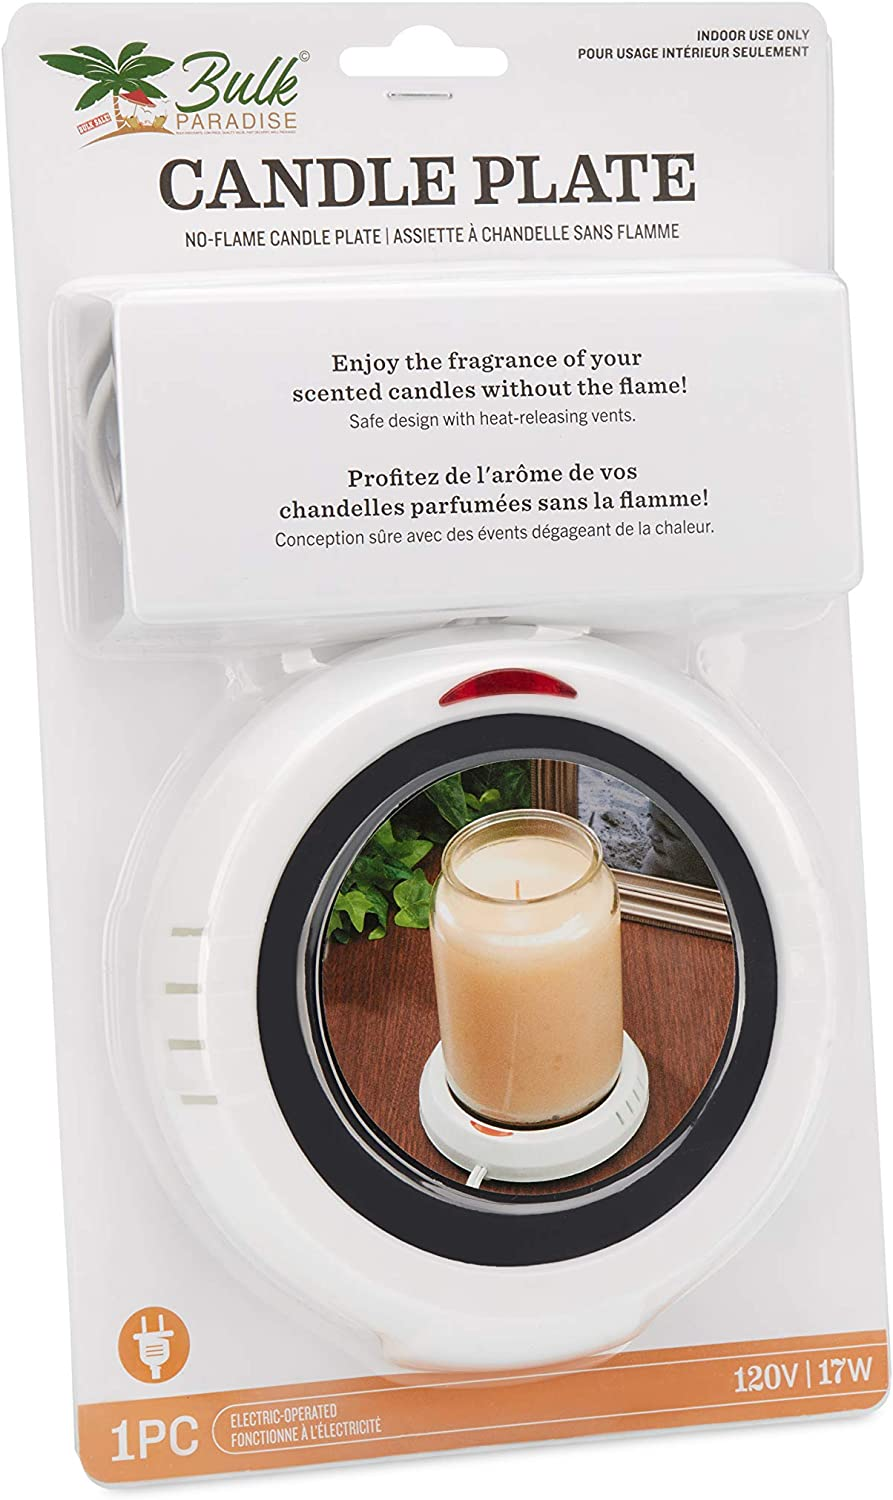 BULK PARADISE Large Jar Warmer Without Safely Super-cheap Max 75% OFF Releases a Scents